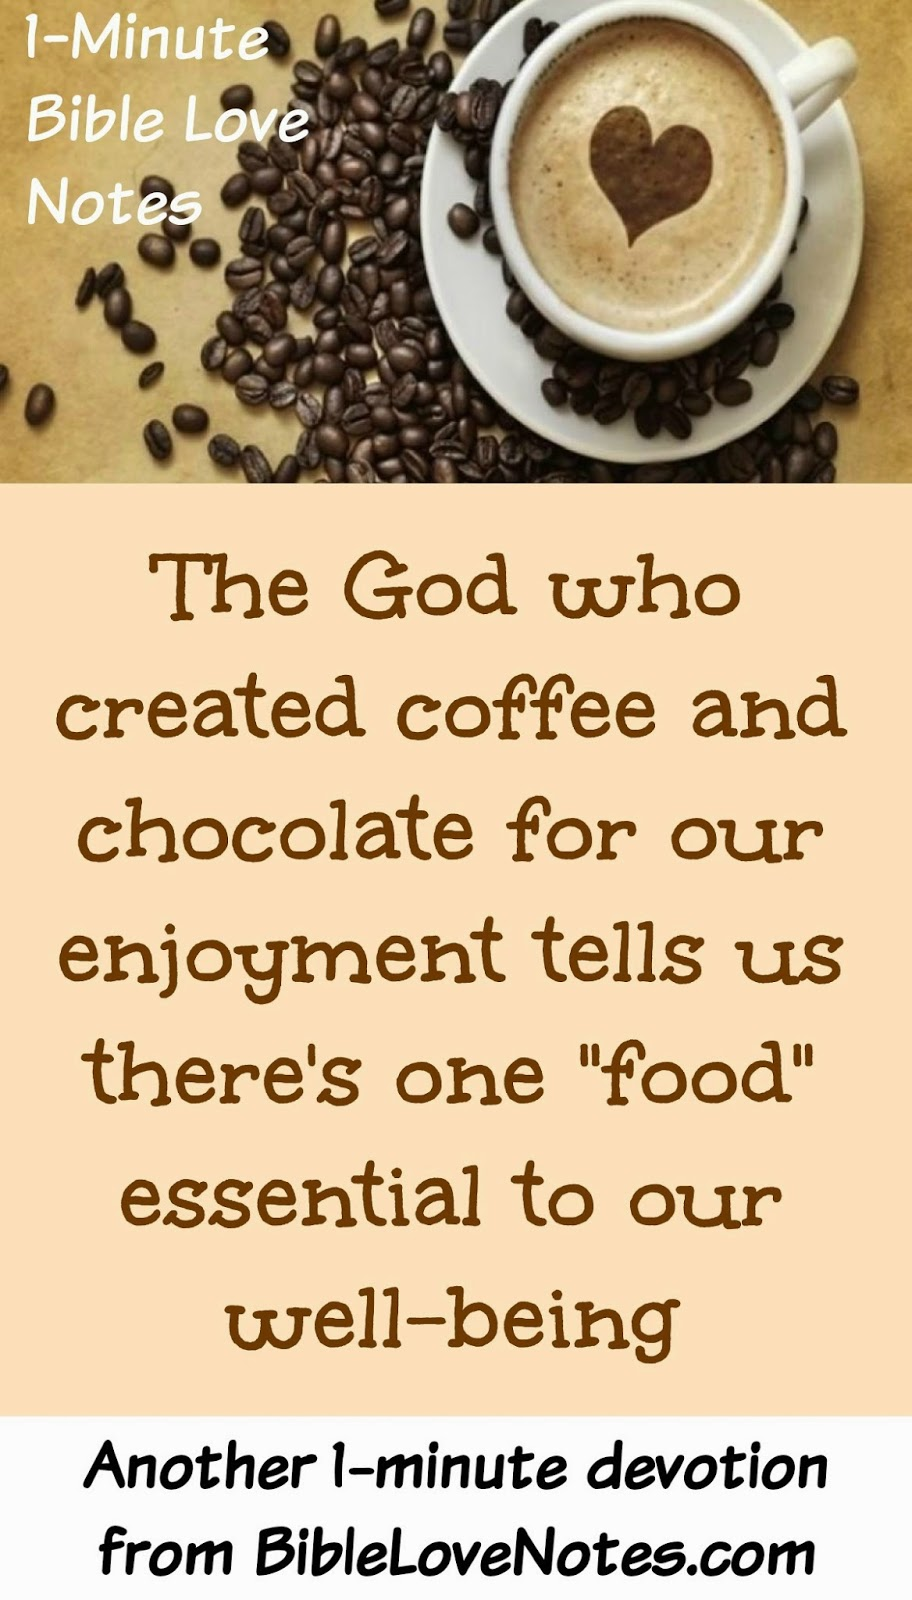 Matthew 4:4, Man does not live by bread alone, shortages of chocolate and coffee